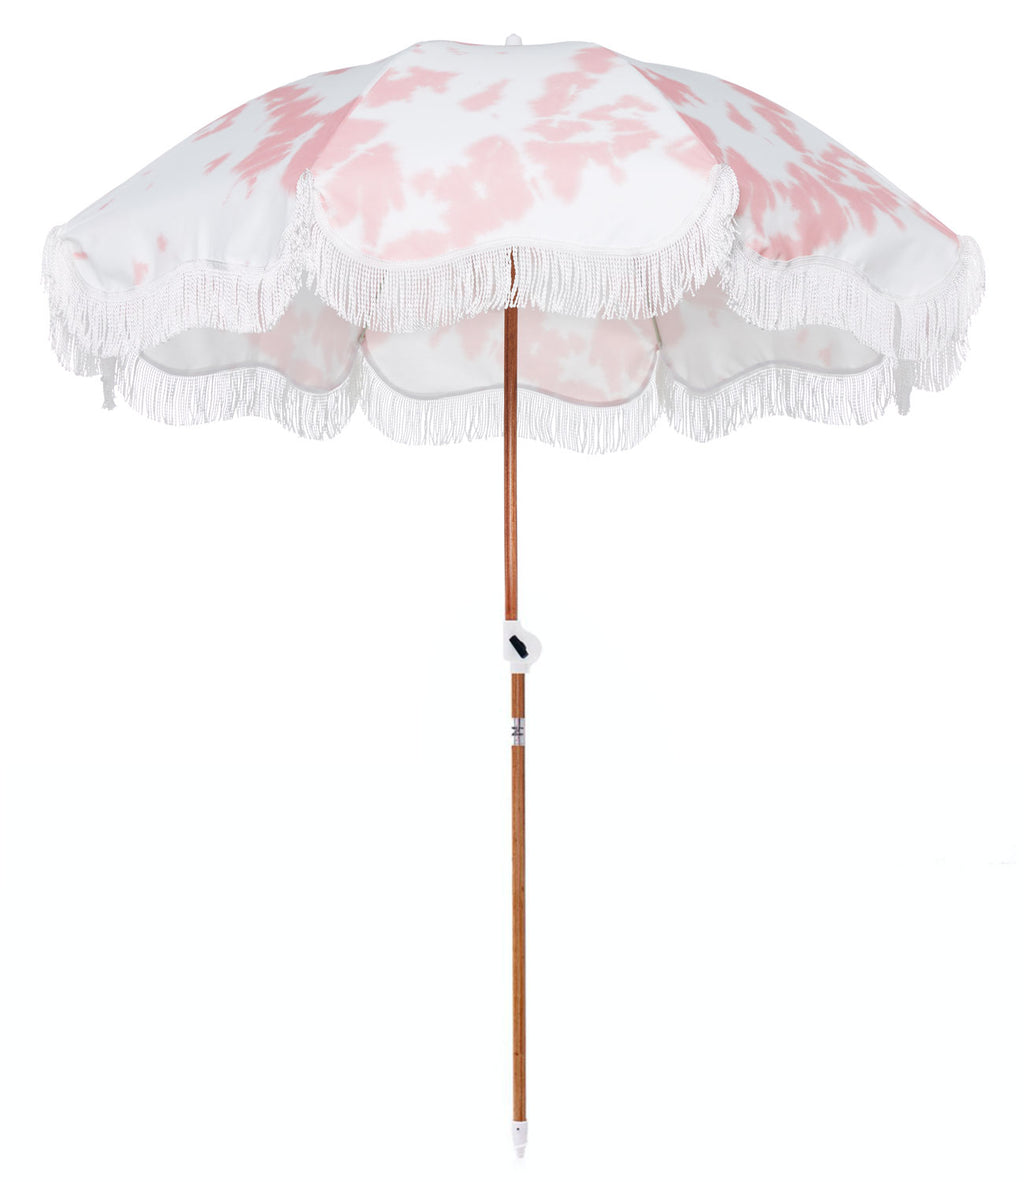 The Holiday Beach Umbrella - Tie Dye